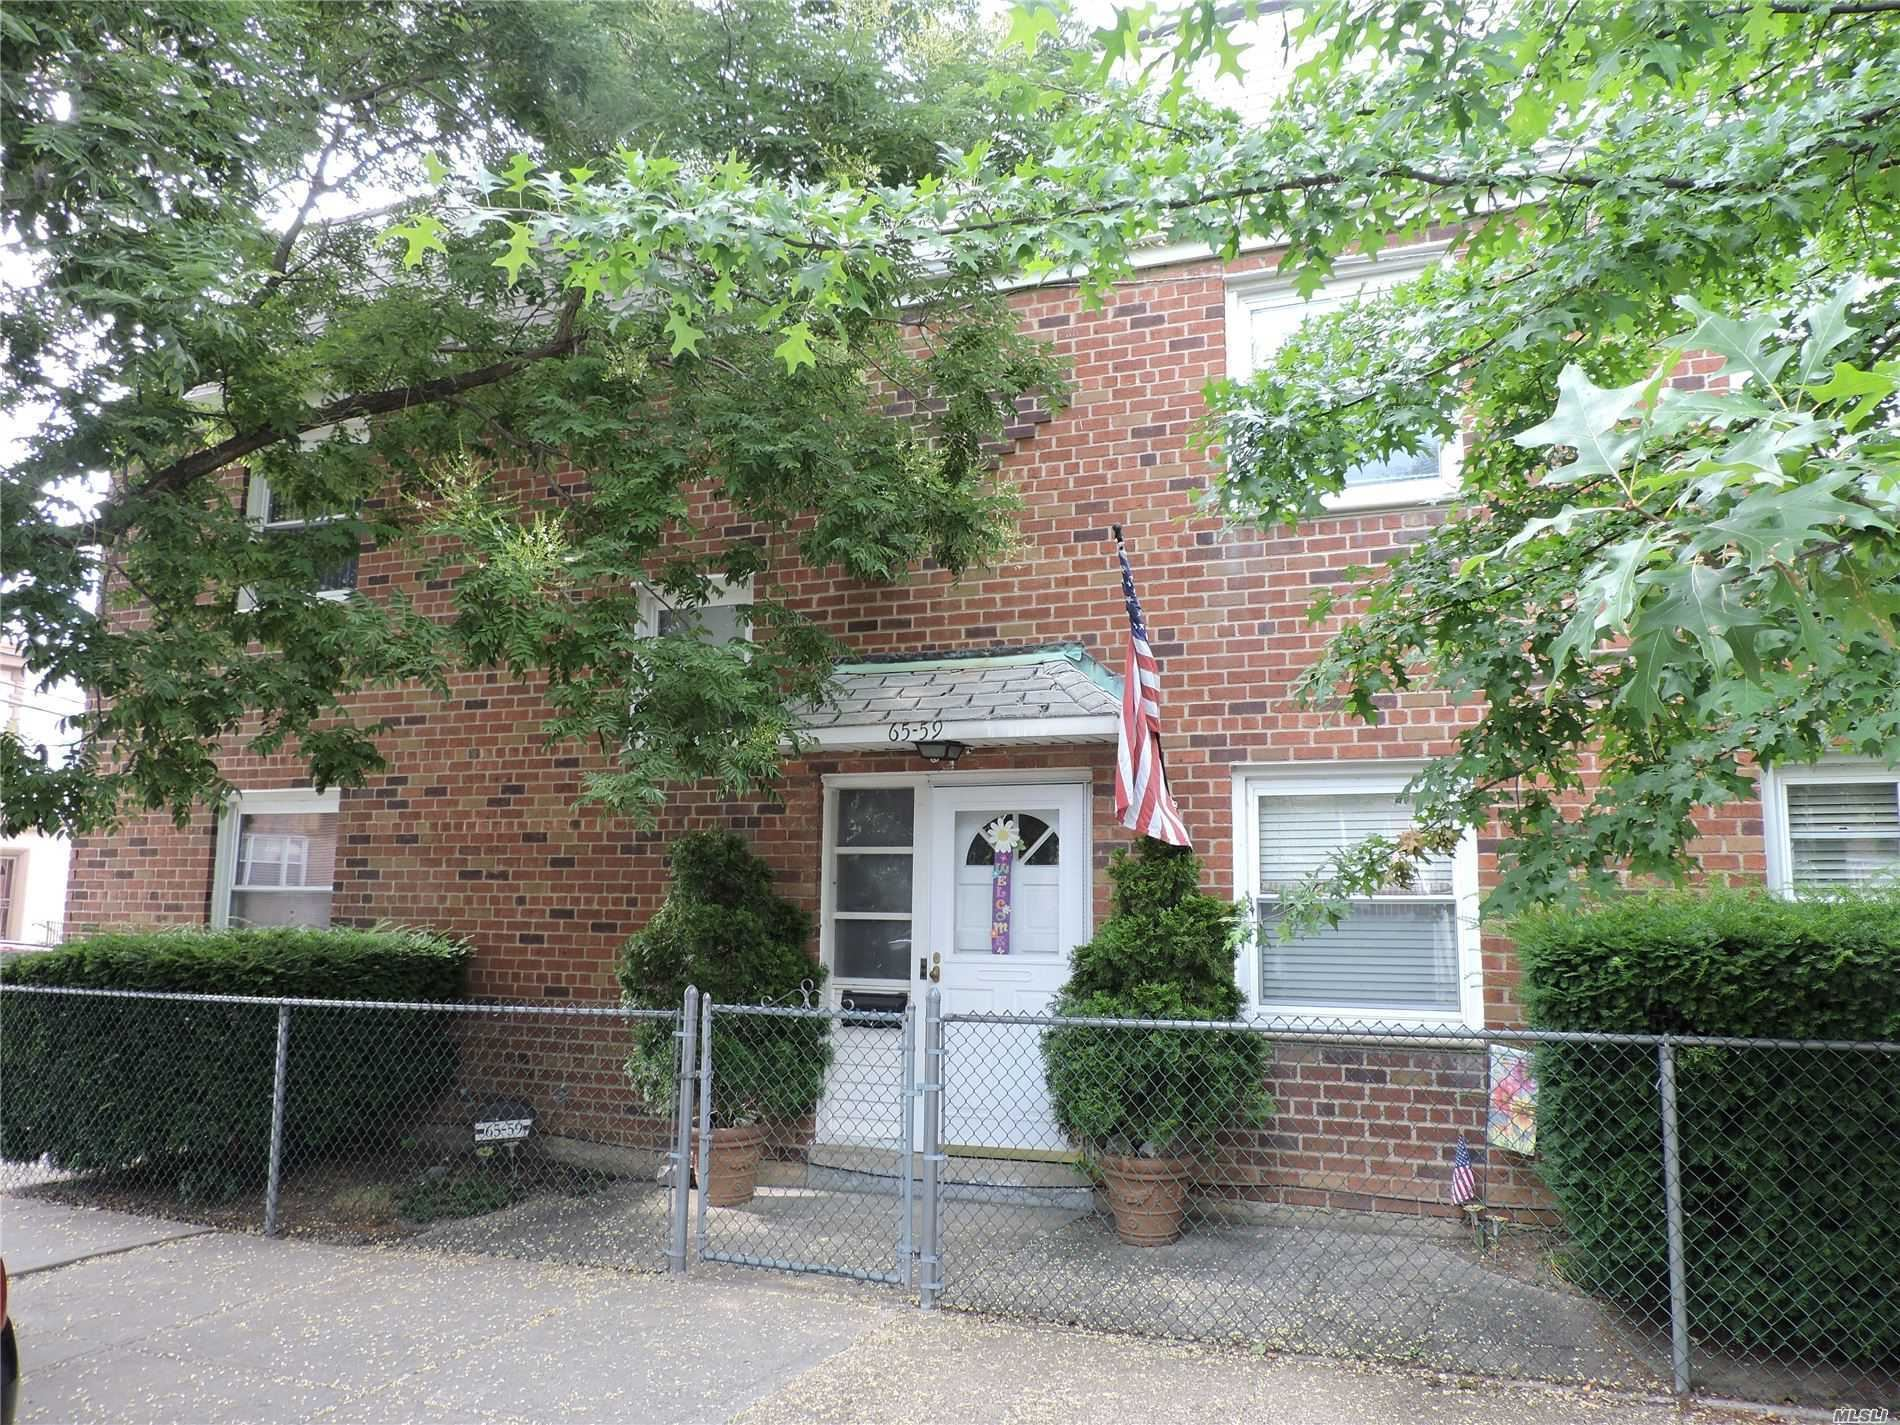 65-59 79th Street, Middle Village, NY 11379 - MLS#: 3237921